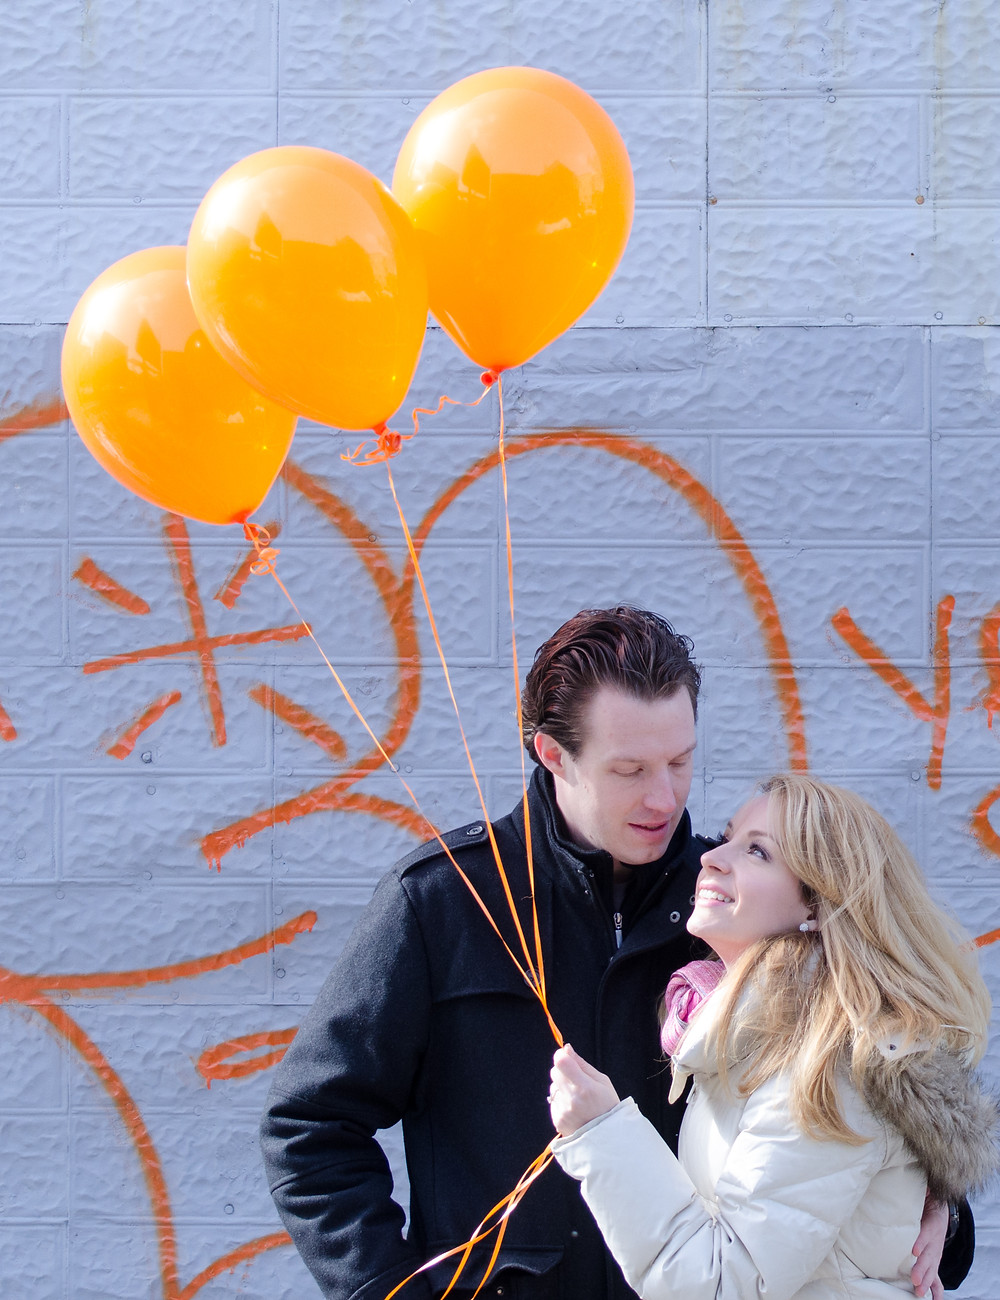 Engagement balloons - Harrison Baker Wedding Photography